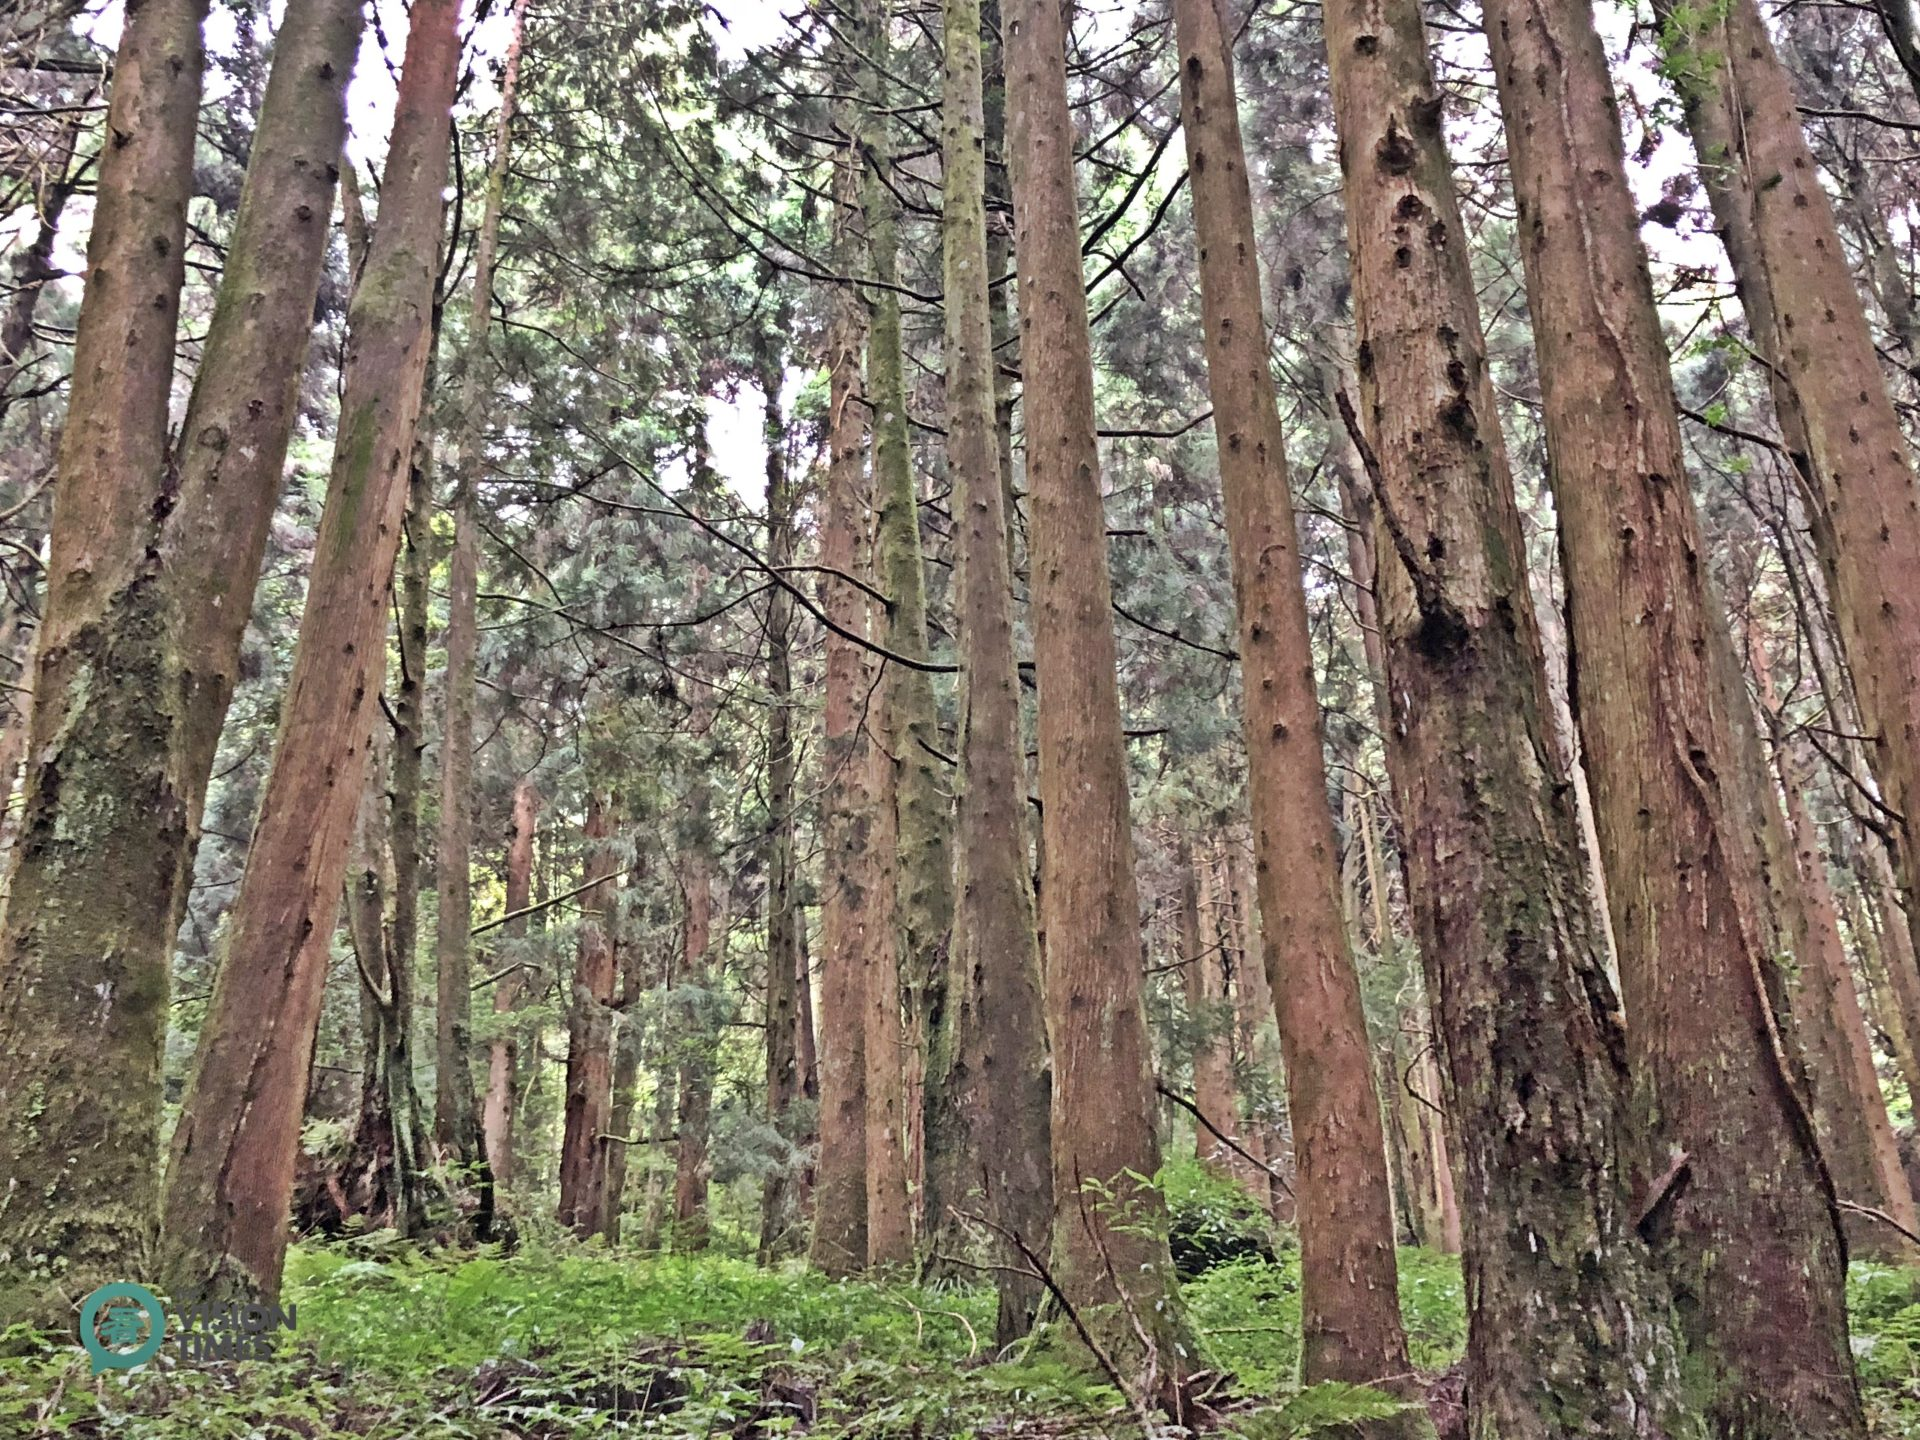 Peacock pine plantation (柳杉人工林) is one of the most typical forest forms in the Alishan National Scenic Area. (Image: Billy Shyu / Vision Times)